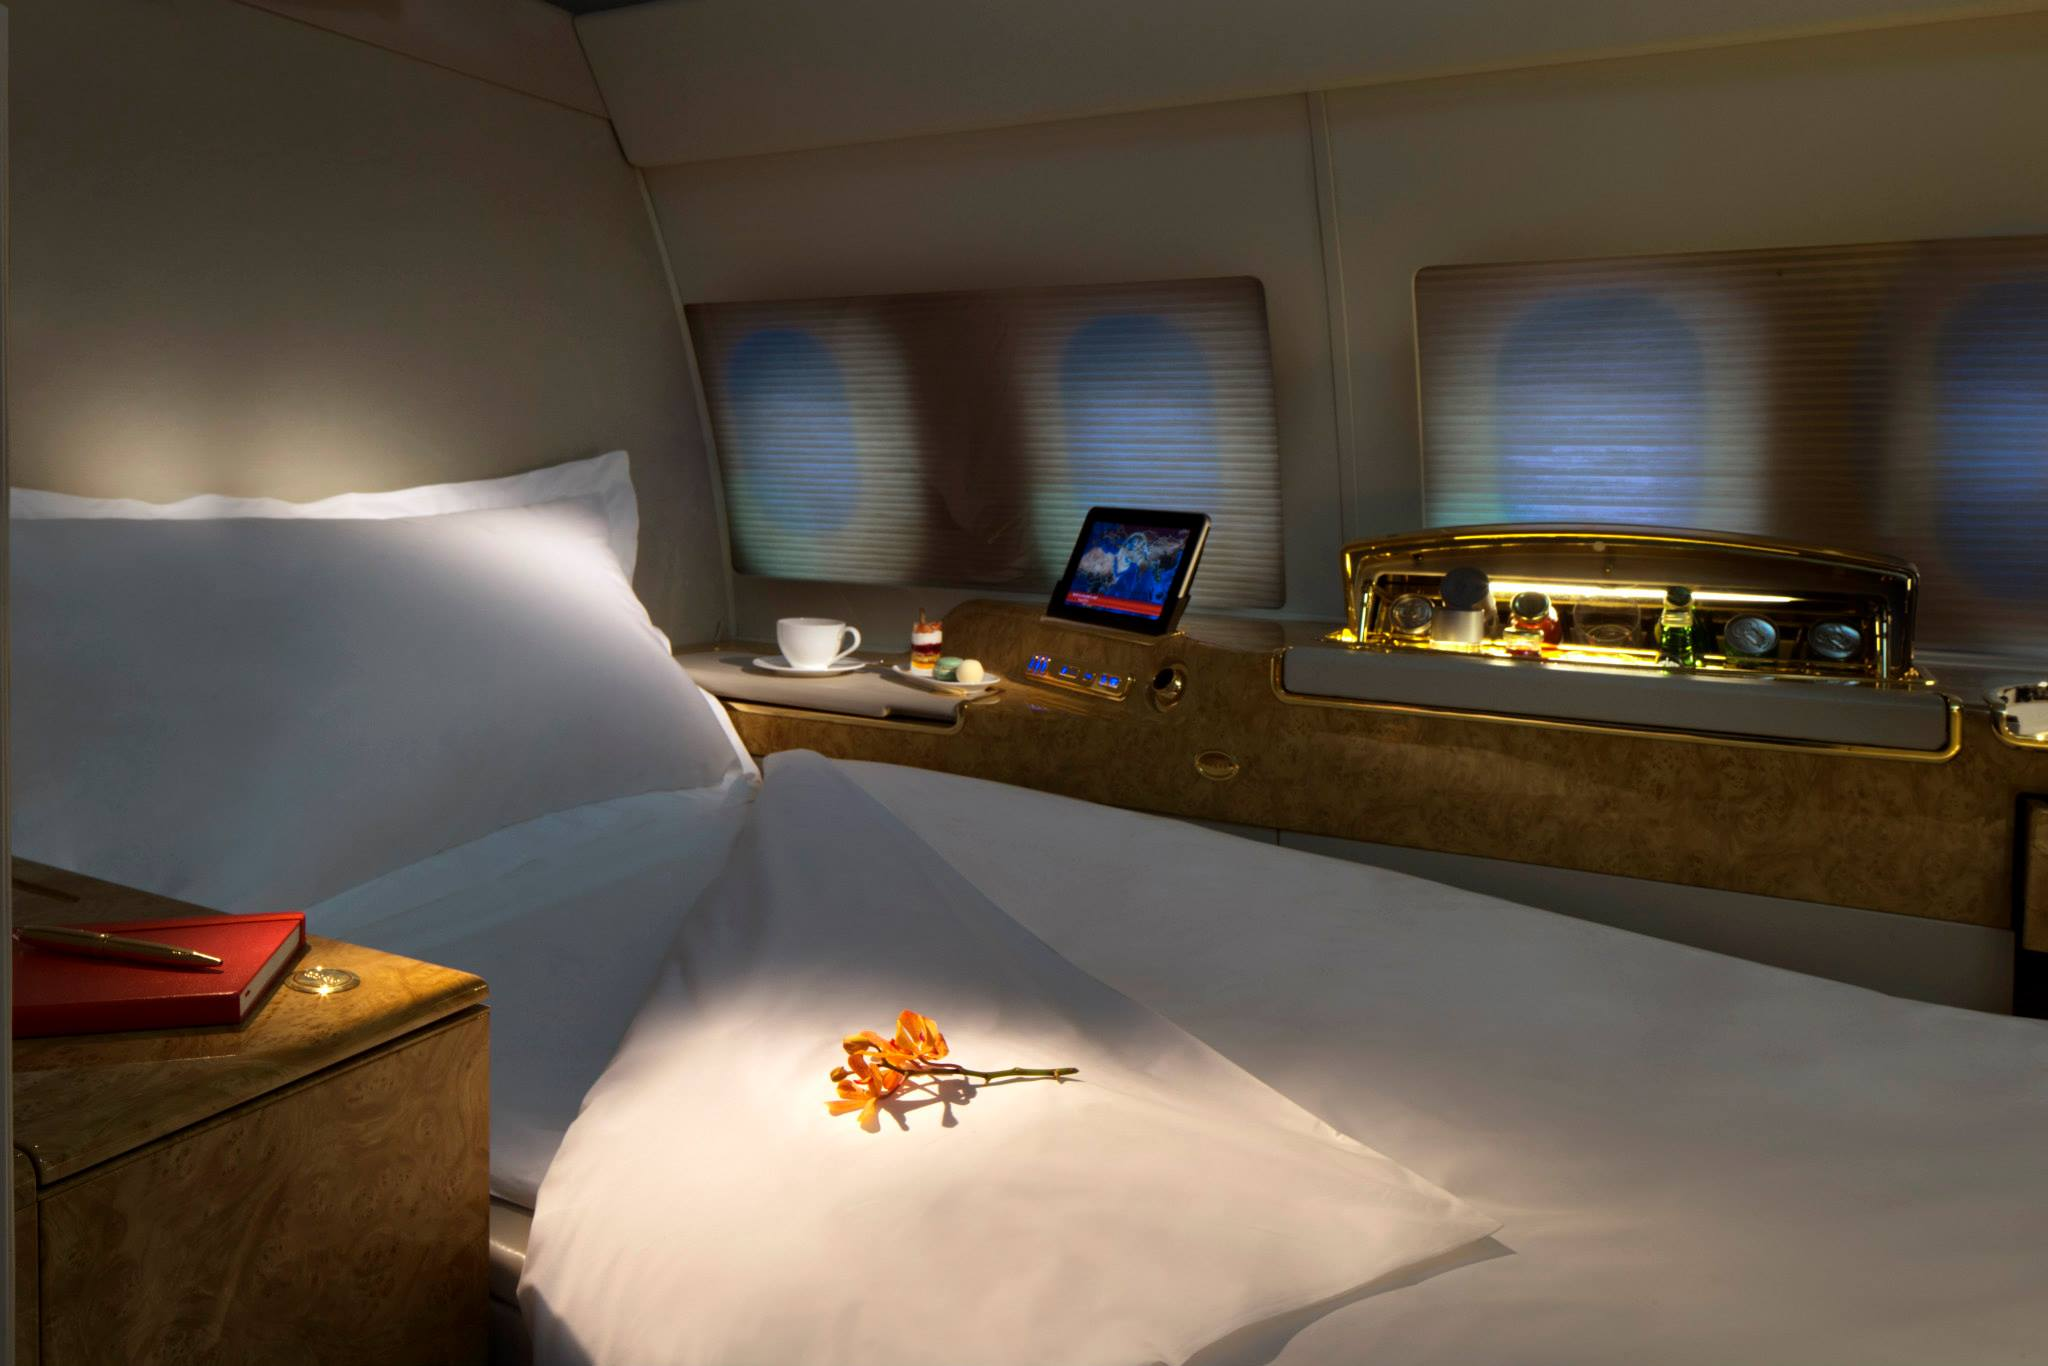 10 private suite aboard the plane feature fully-flat seat beds and personal entertainment systems.